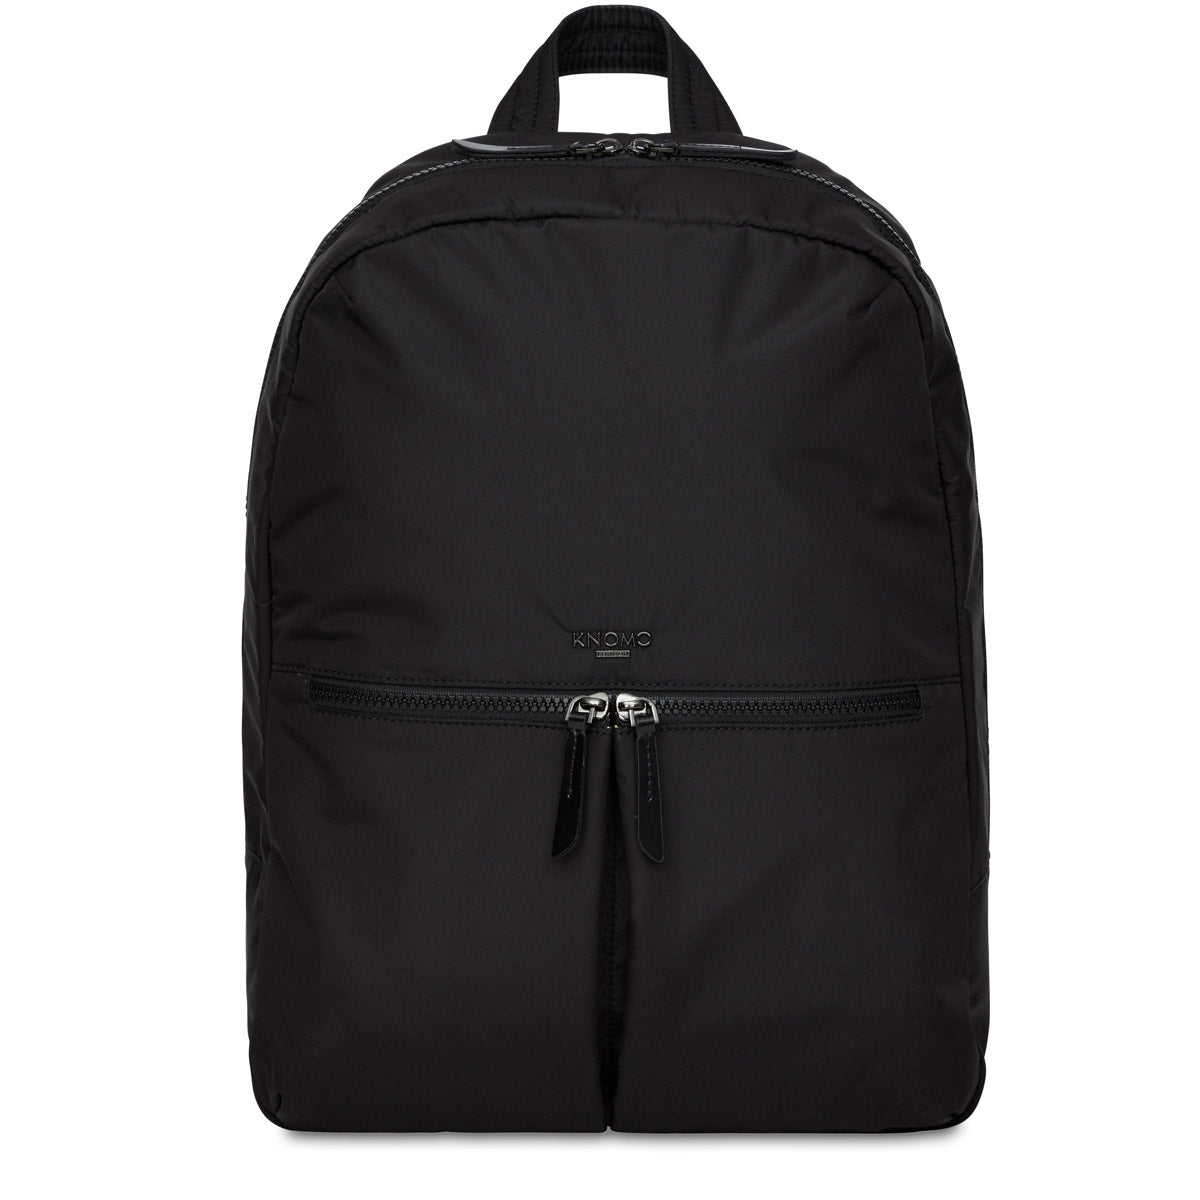 "Berlin Laptop Backpack - 15"" -  Black 